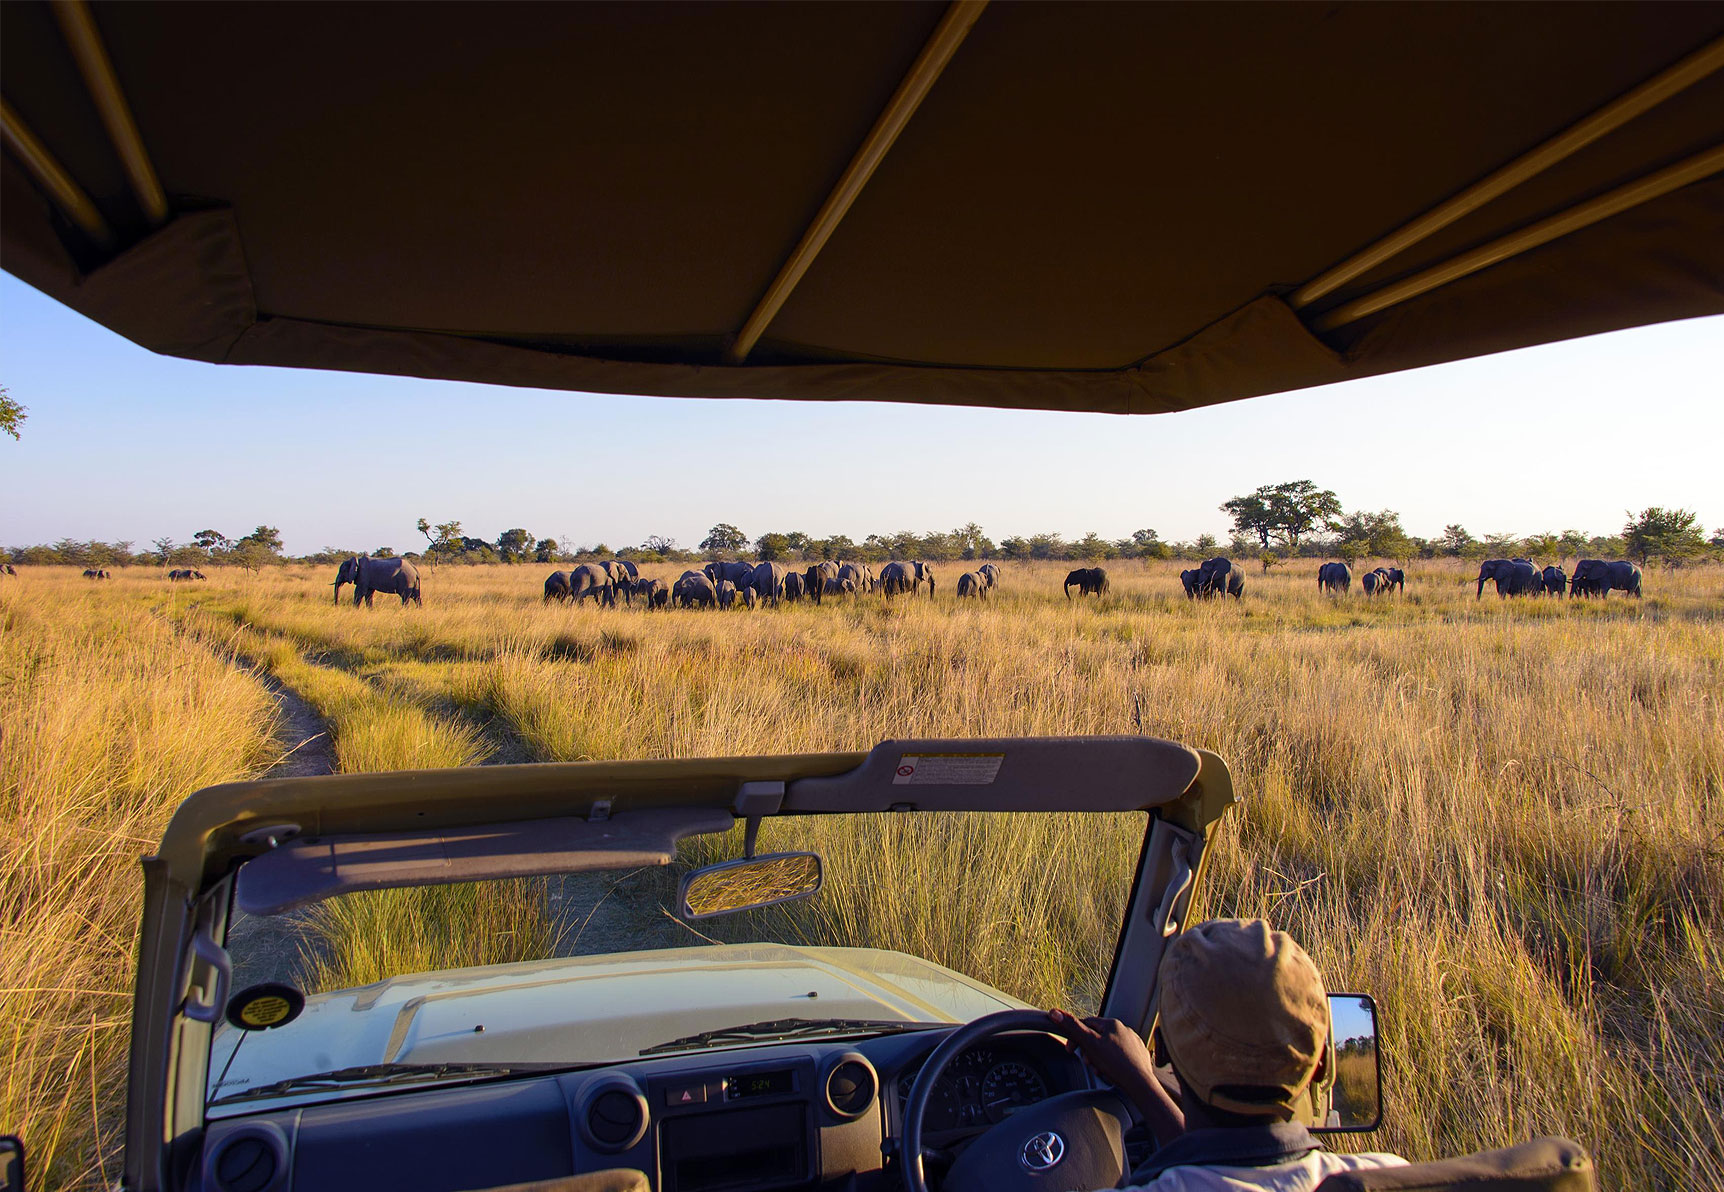 Best Time For... Game Viewing inline image 5ddcf60db03fe